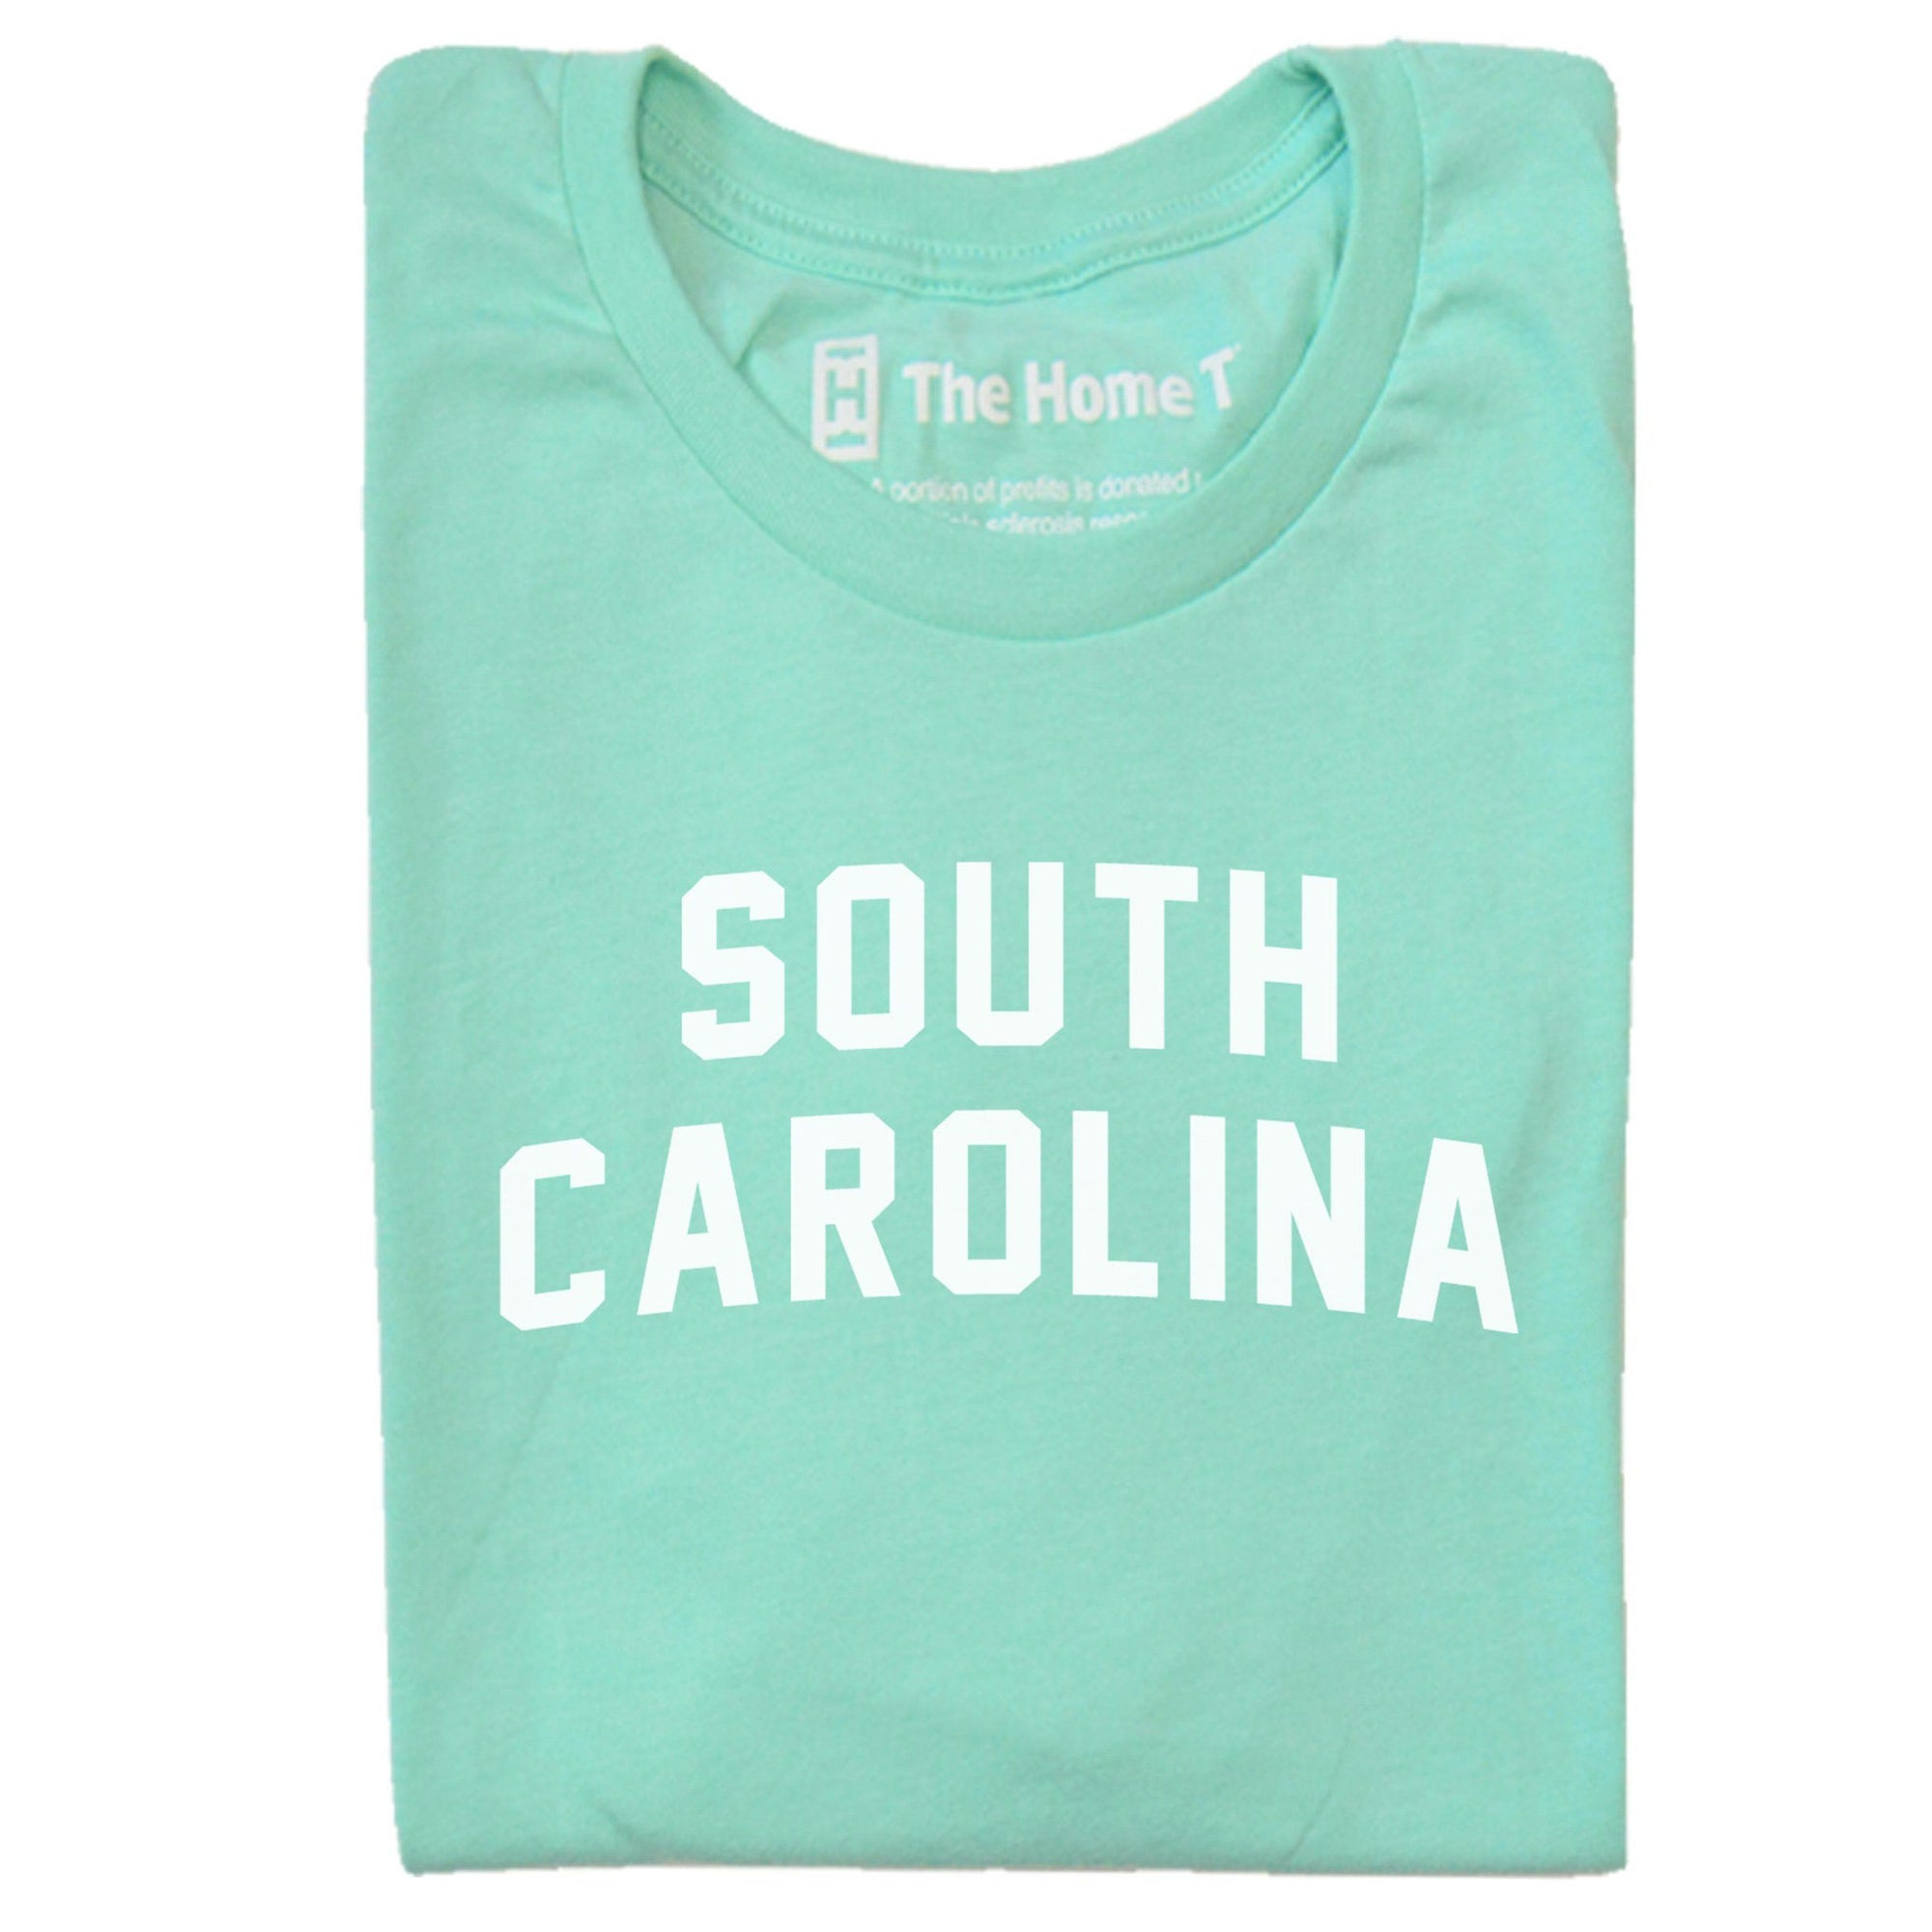 South Carolina Arched The Home T XS Mint